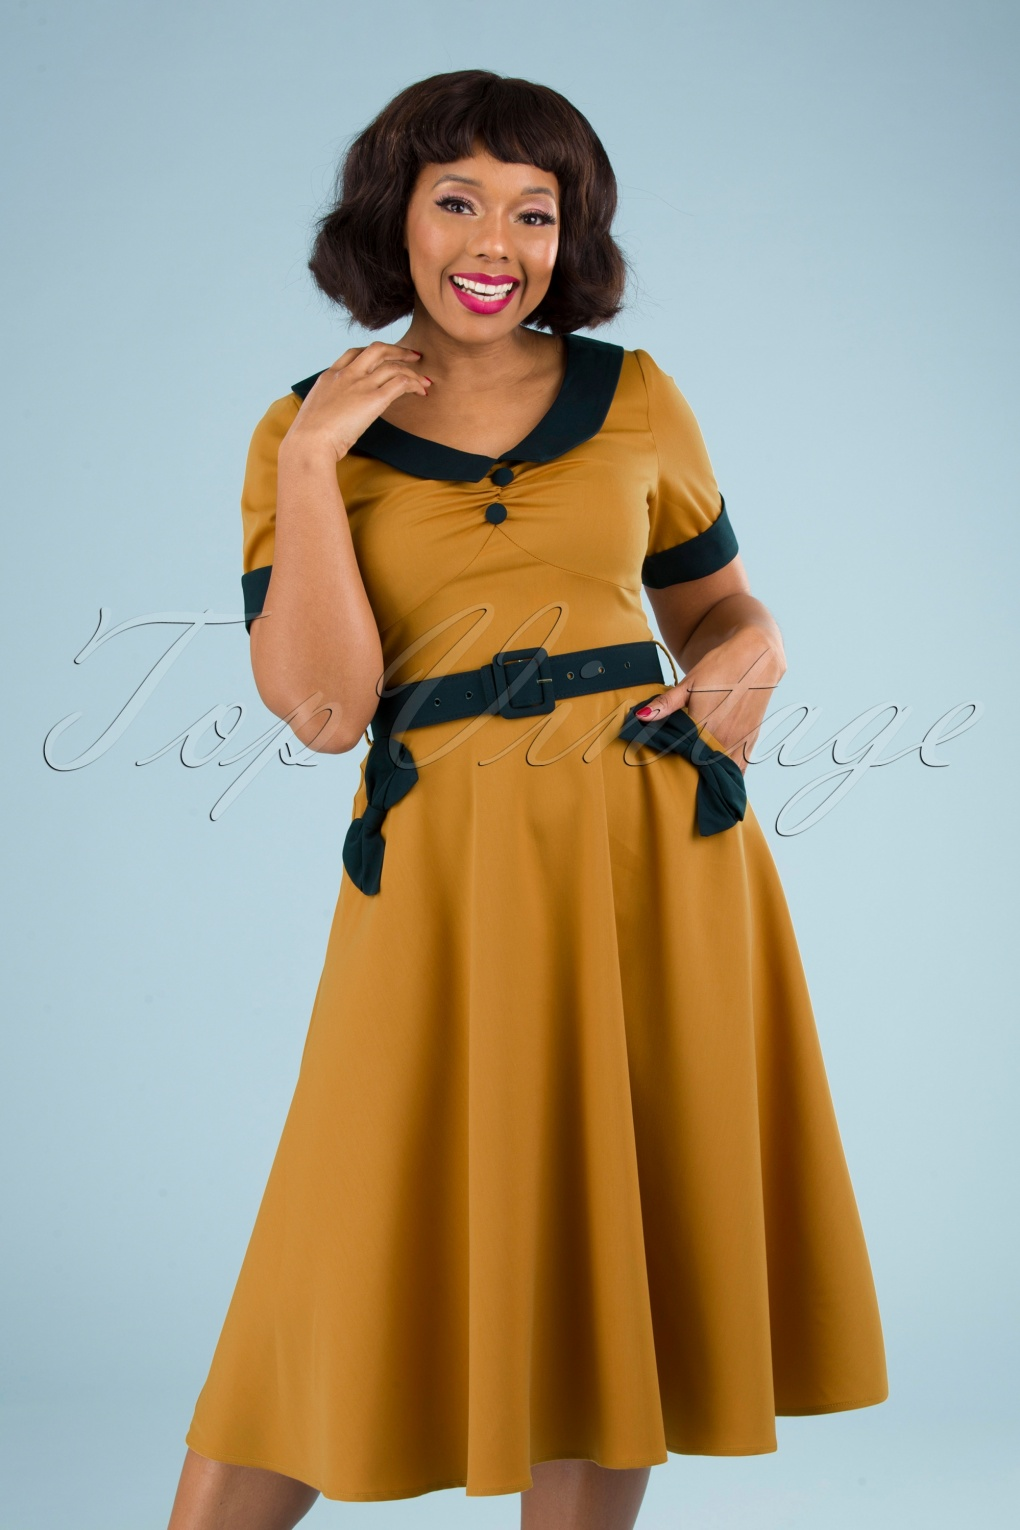 Fifties Dresses : 1950s Style Swing to Wiggle Dresses 50s Maryann Swing Dress in Honey Yellow £58.62 AT vintagedancer.com